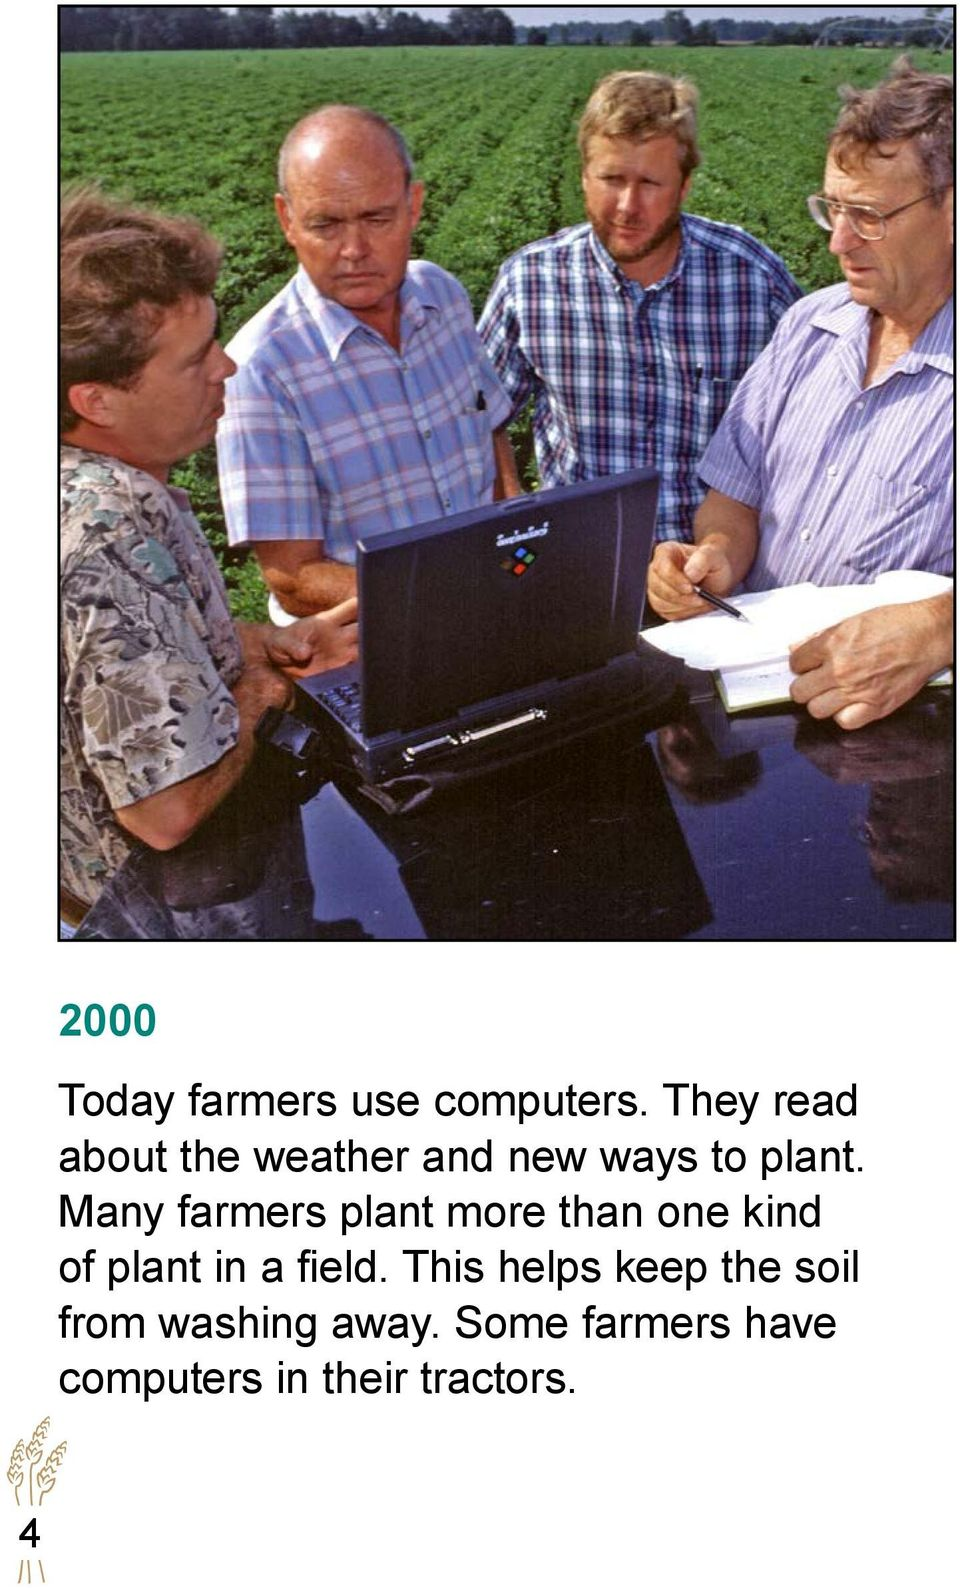 Many farmers plant more than one kind of plant in a field.